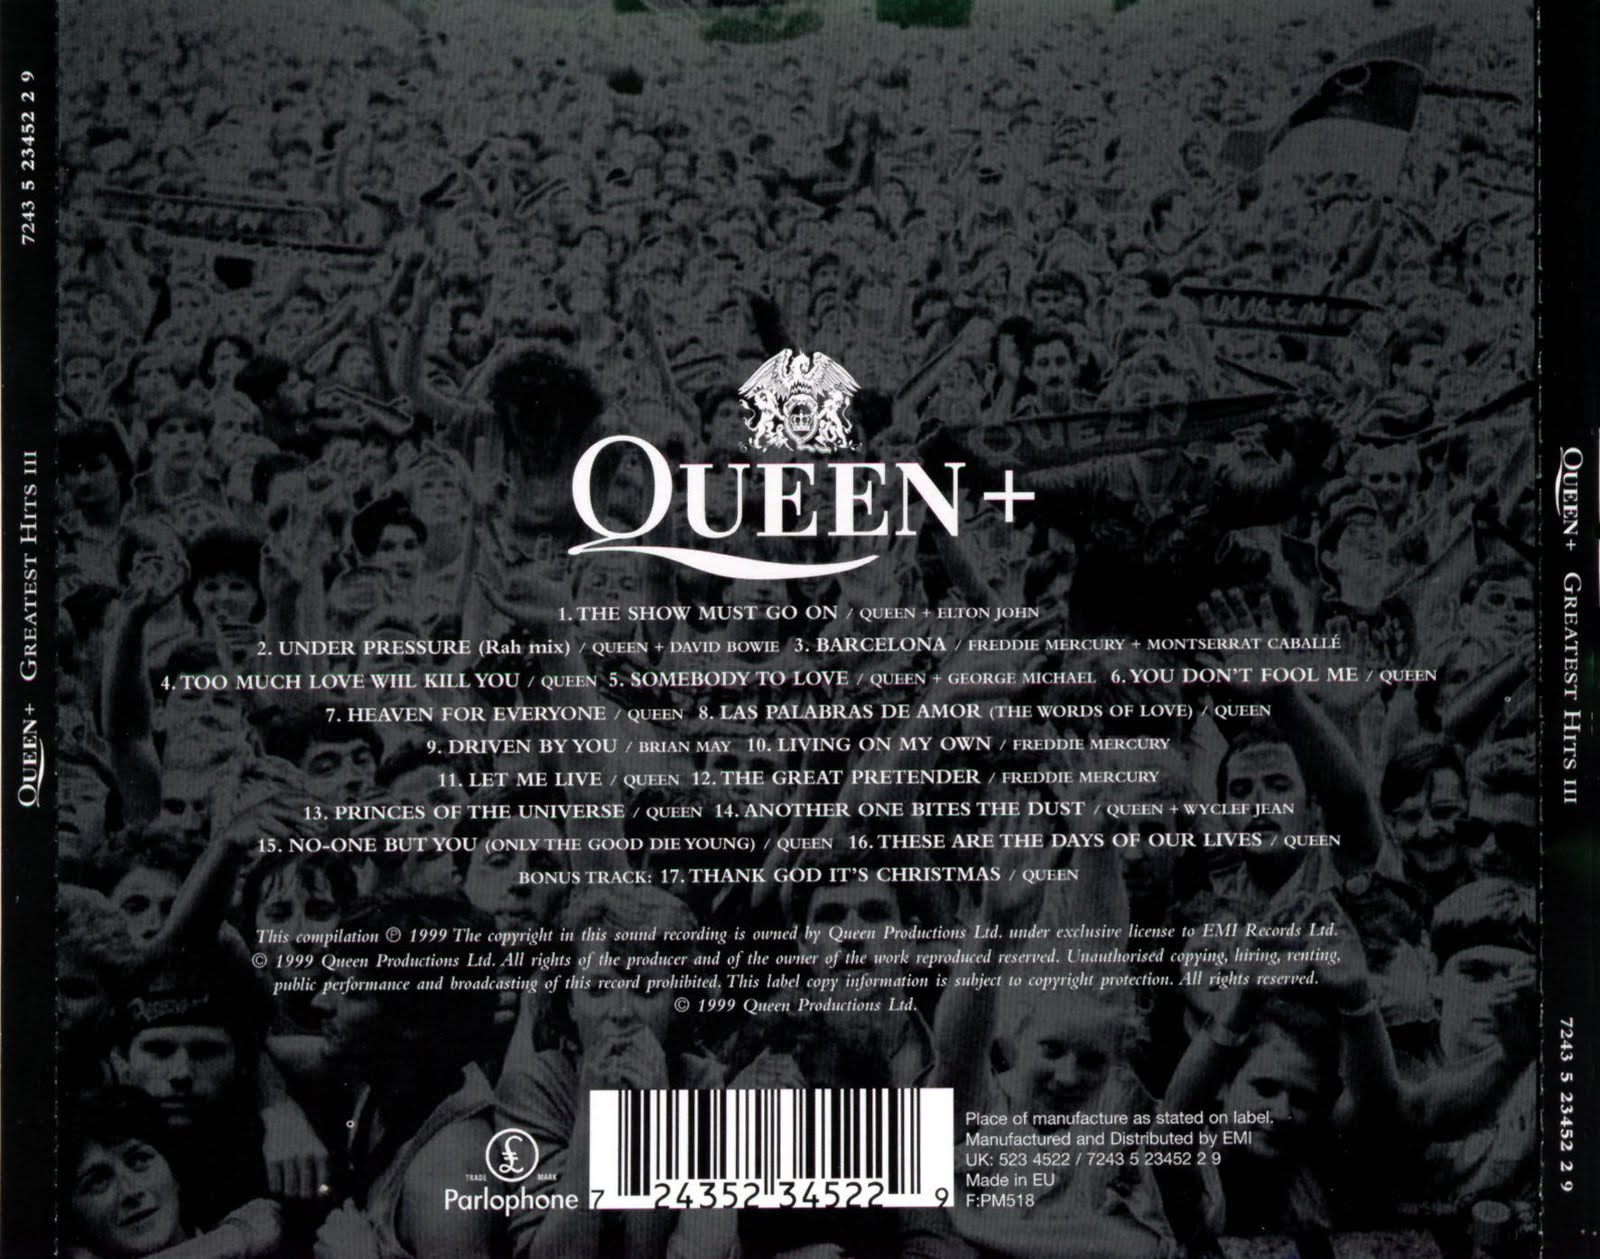 queen greatest hits 3 - photo #9